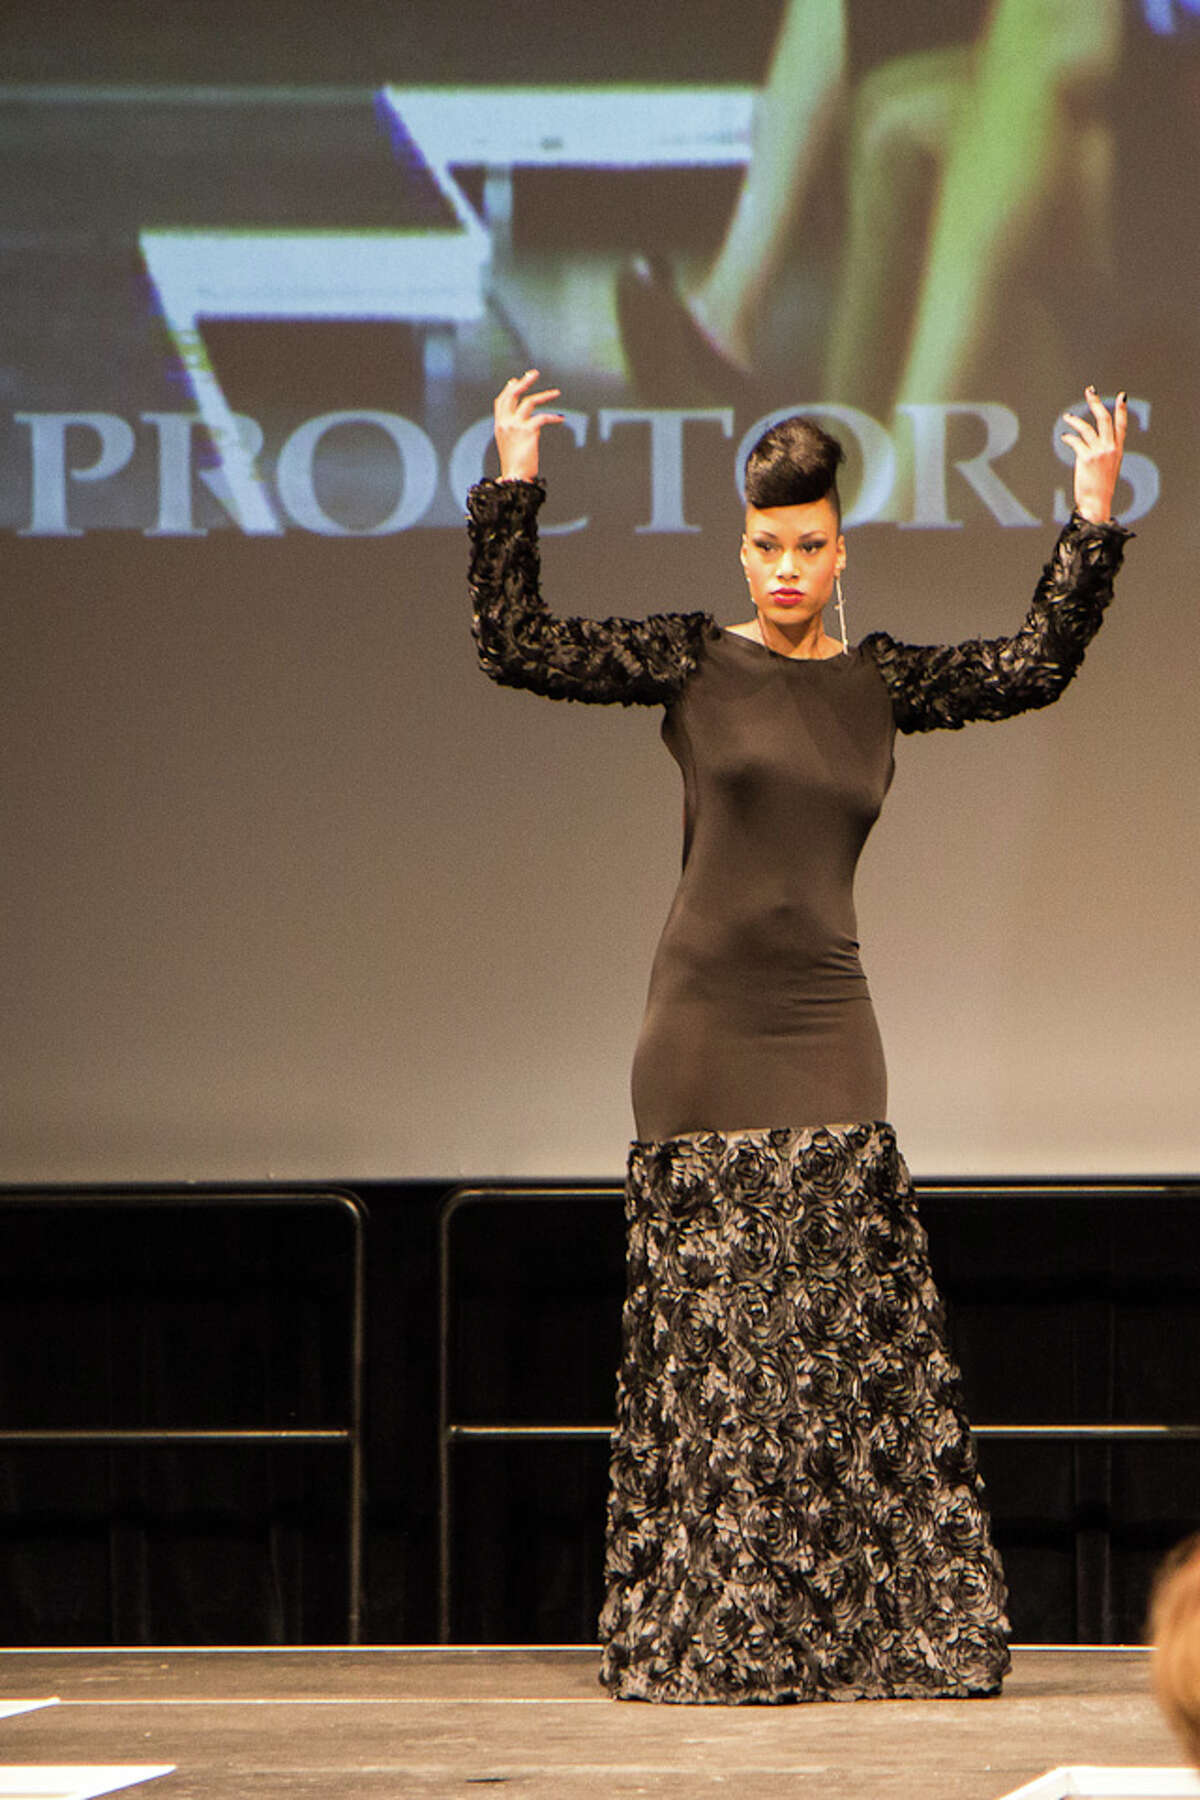 Were you Seen at the 4th Annual Electric City Couture Runway Fashion Show at Proctors in Schenectady on Friday, May 24, 2013?